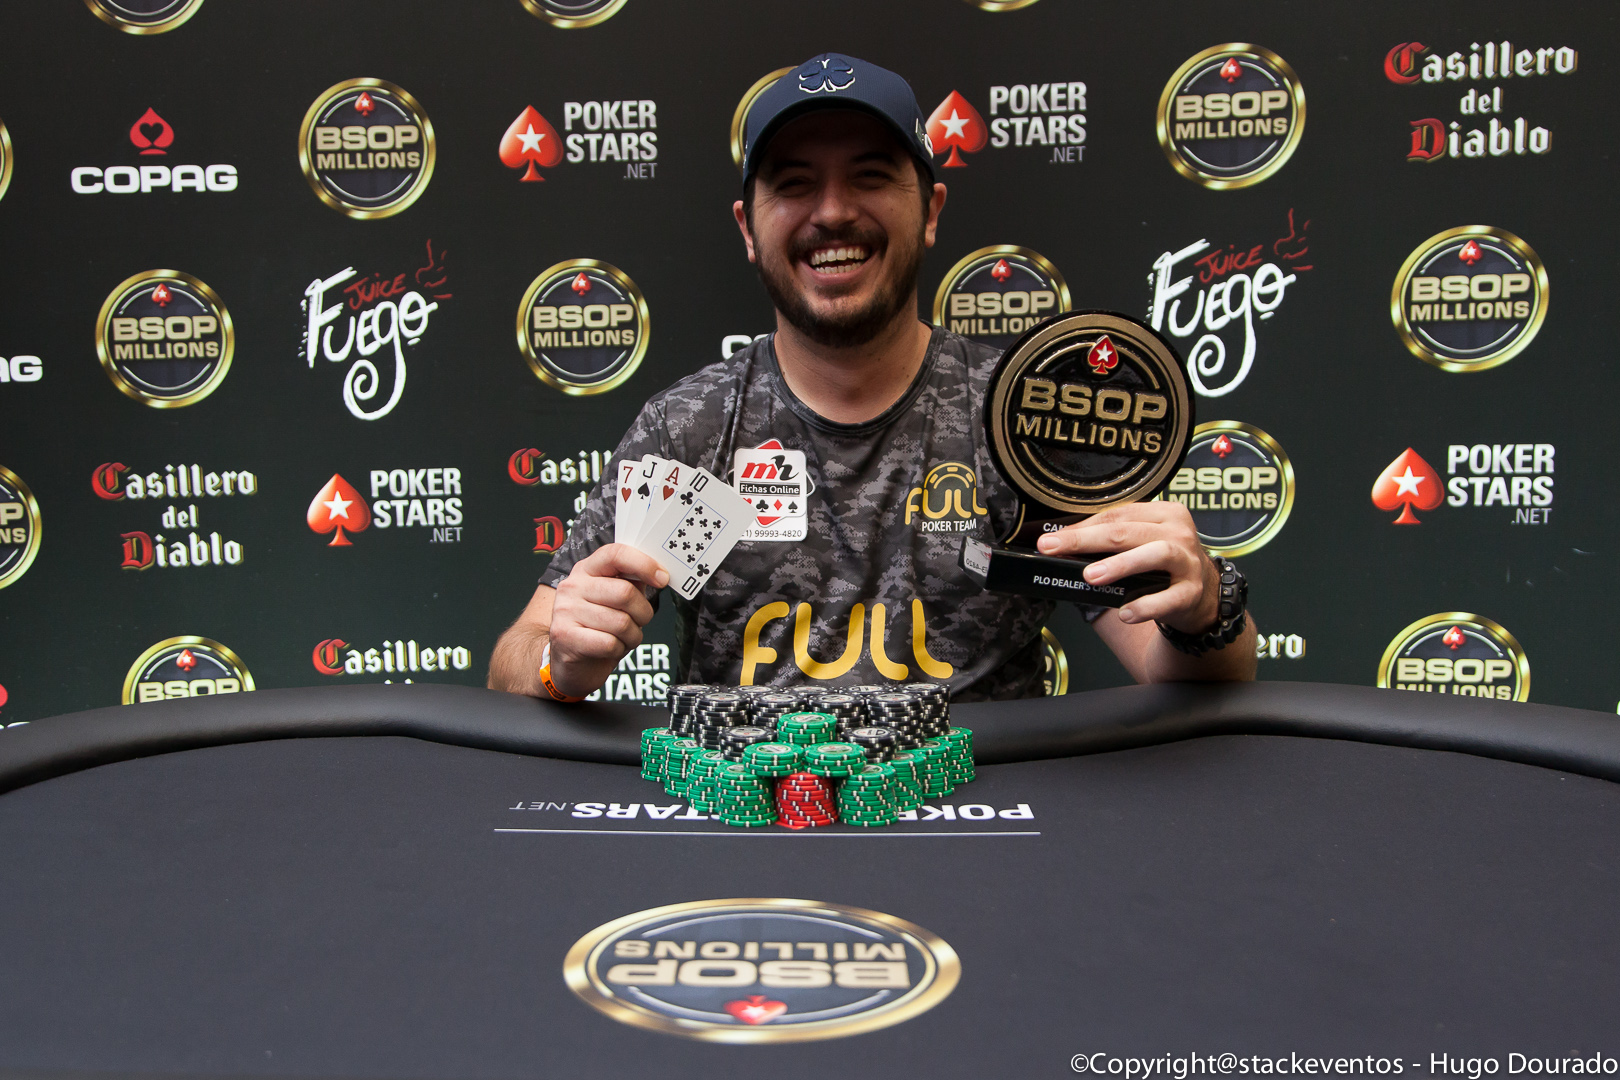 Murilo Figueredo campeão do PLO Dealers Choice do BSOP Millions